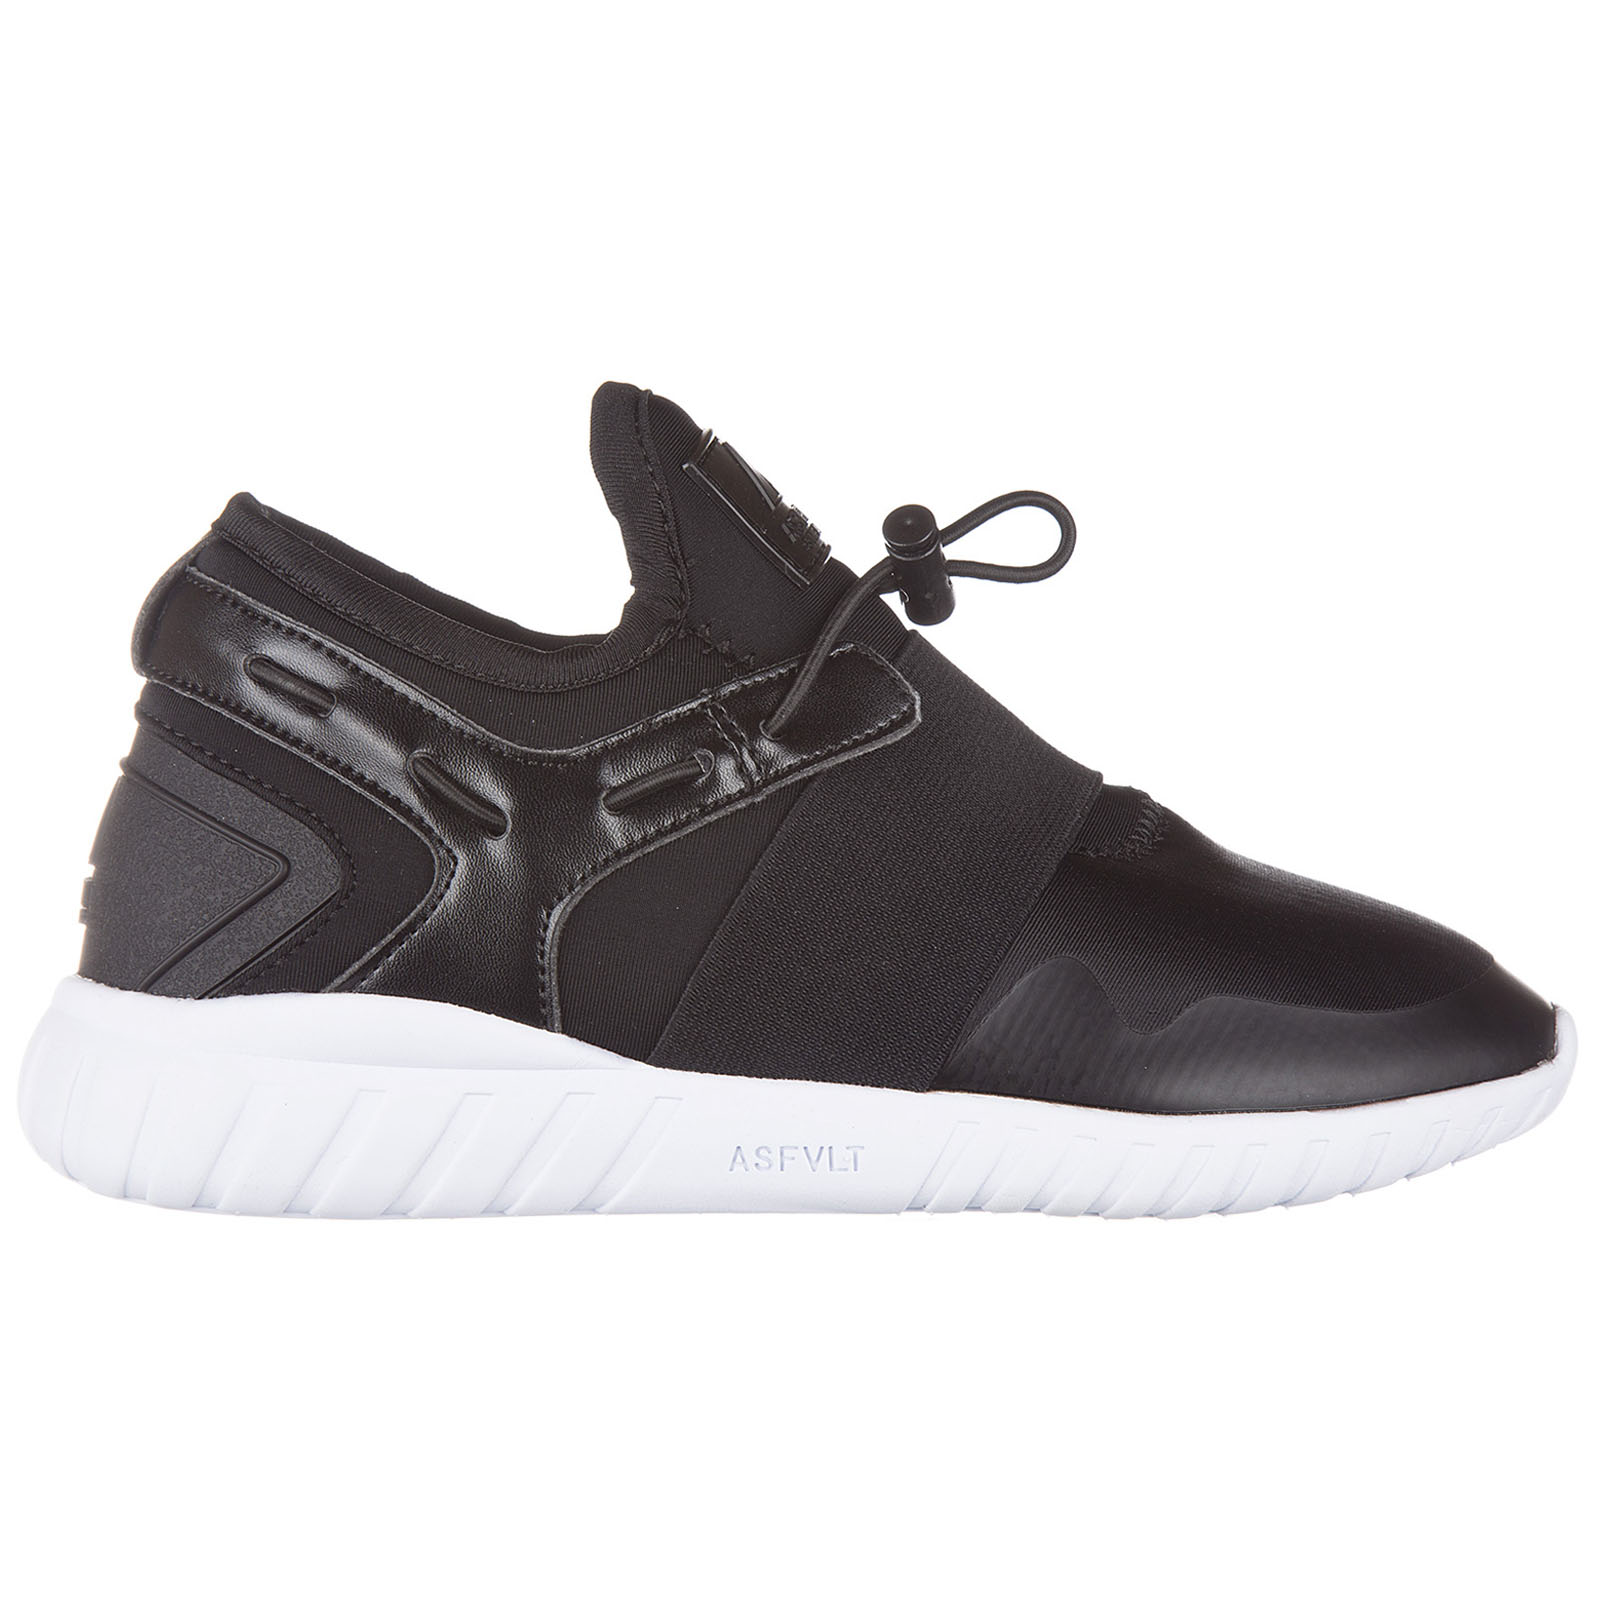 Women's shoes trainers sneakers  area mid